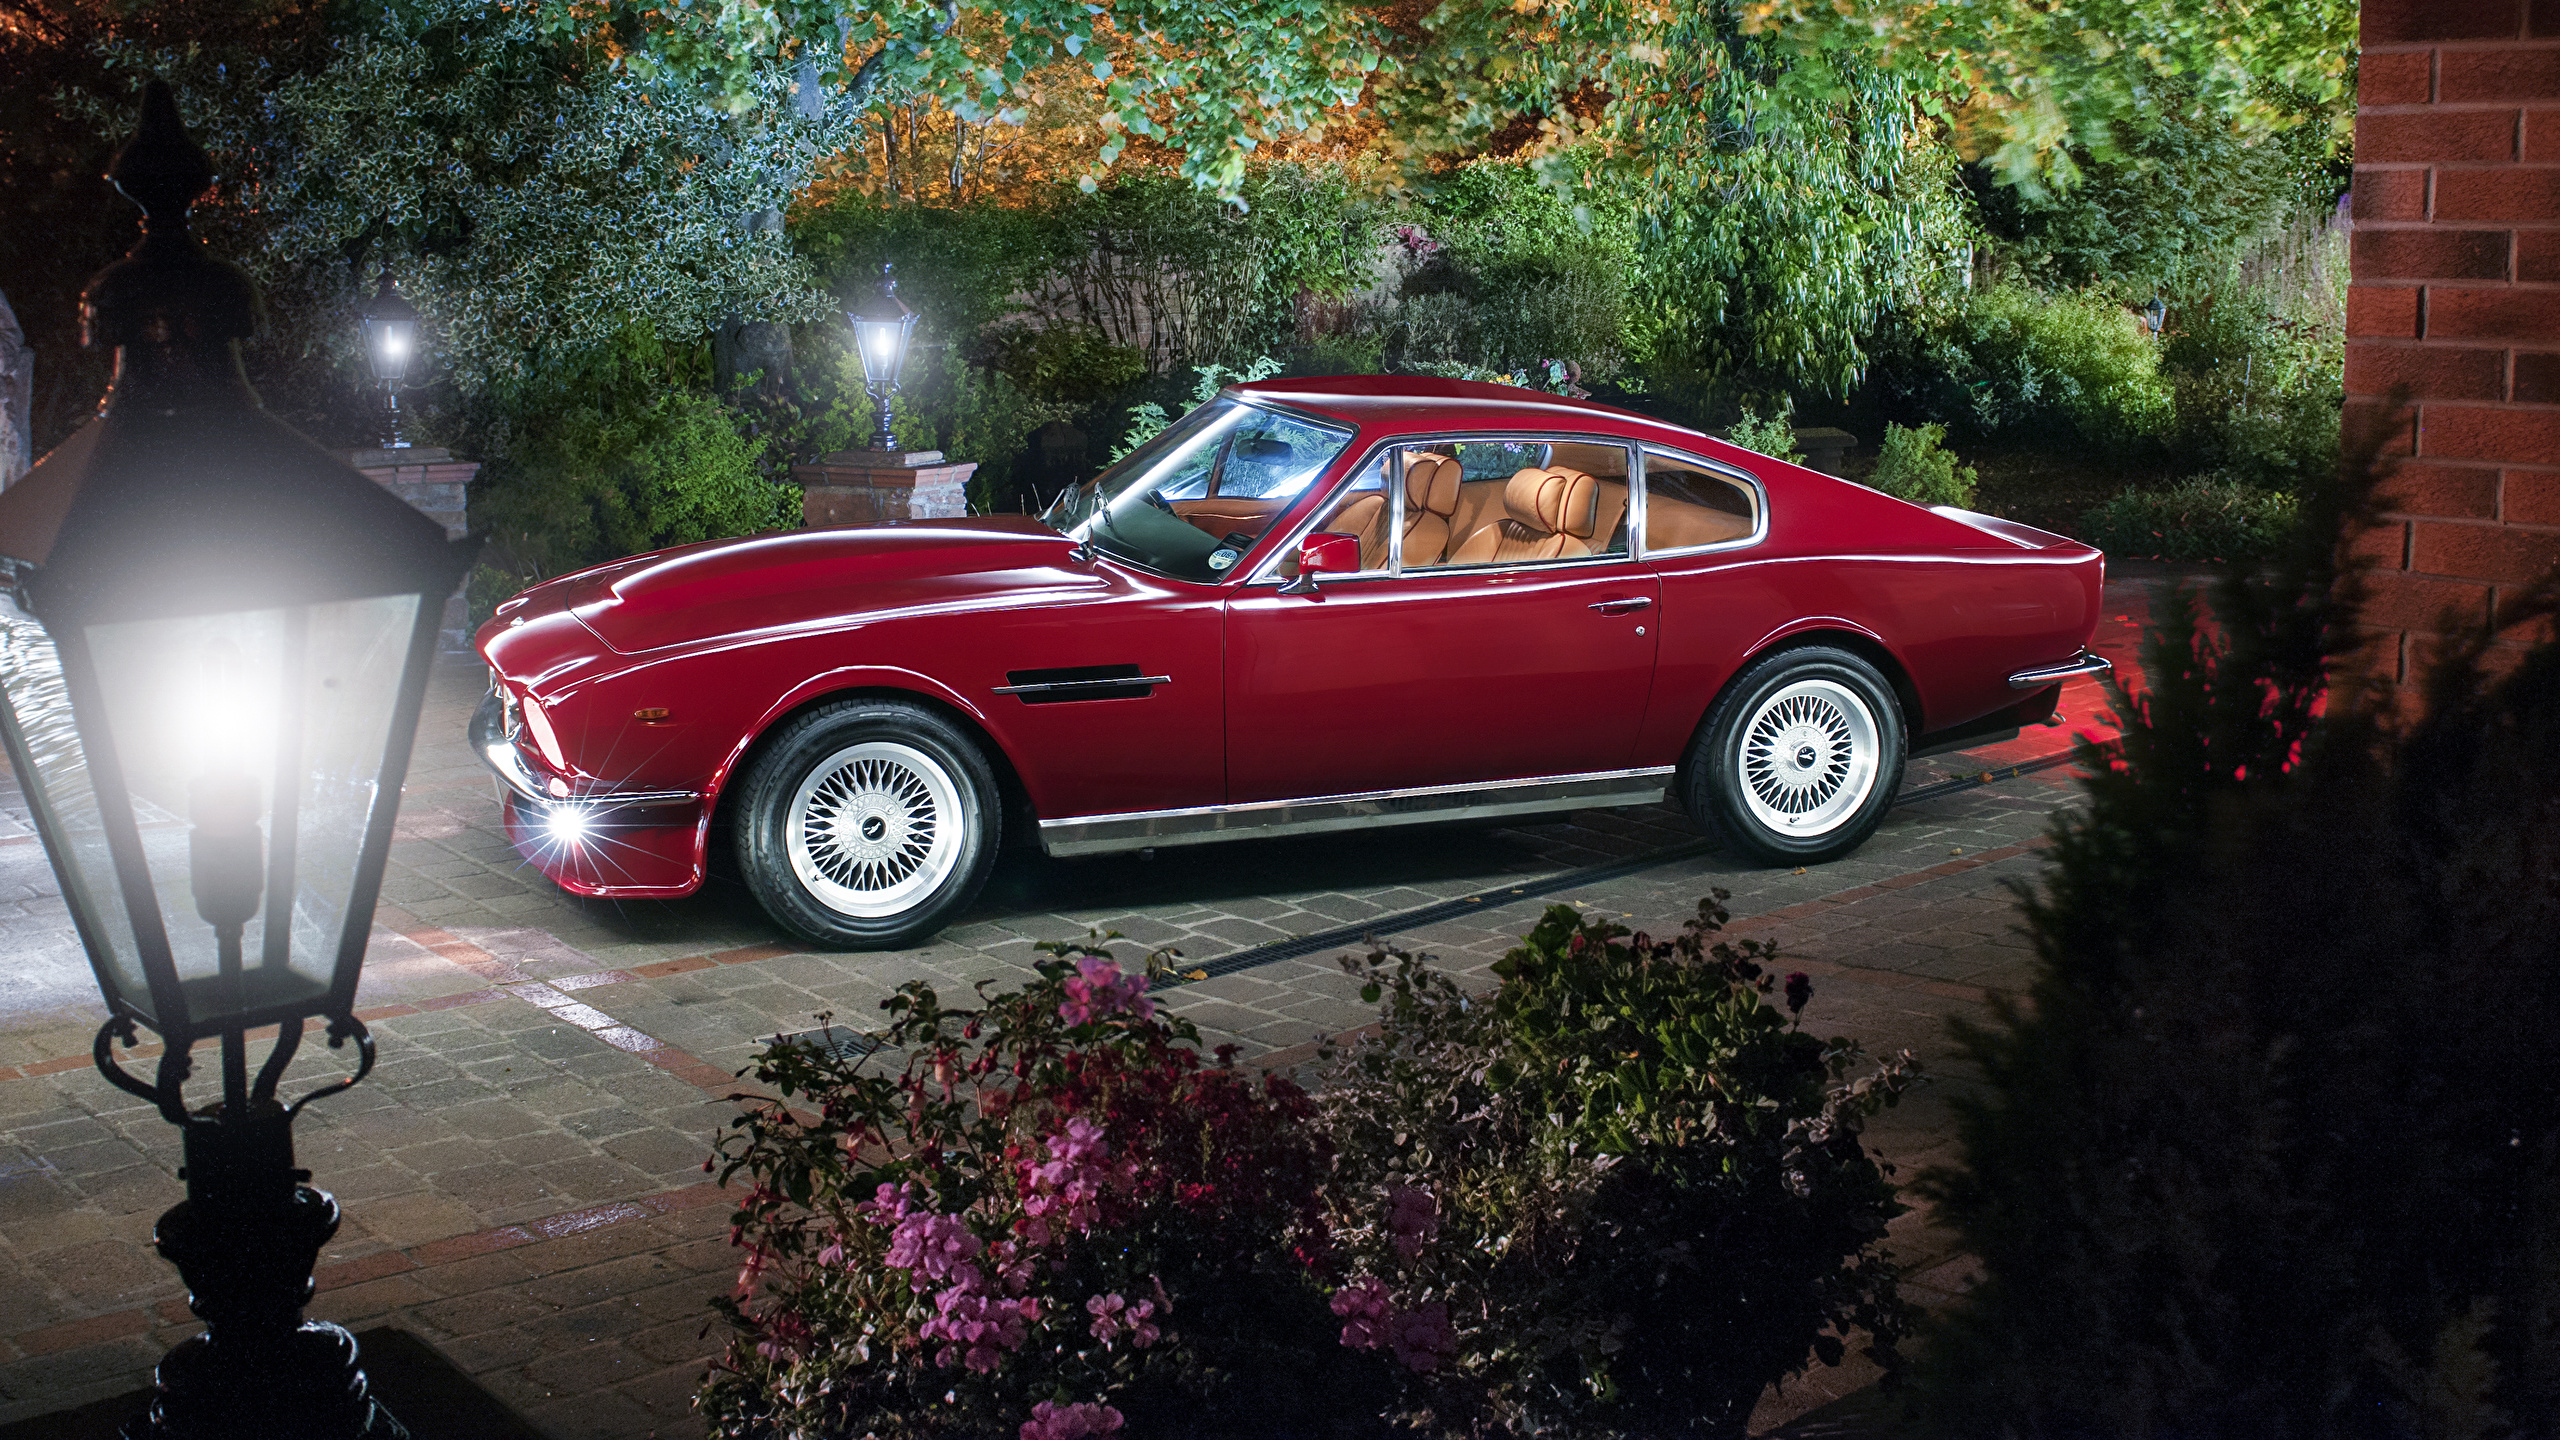 Photos Aston Martin 1977 89 V8 Vantage Red Retro Cars 2560x1440